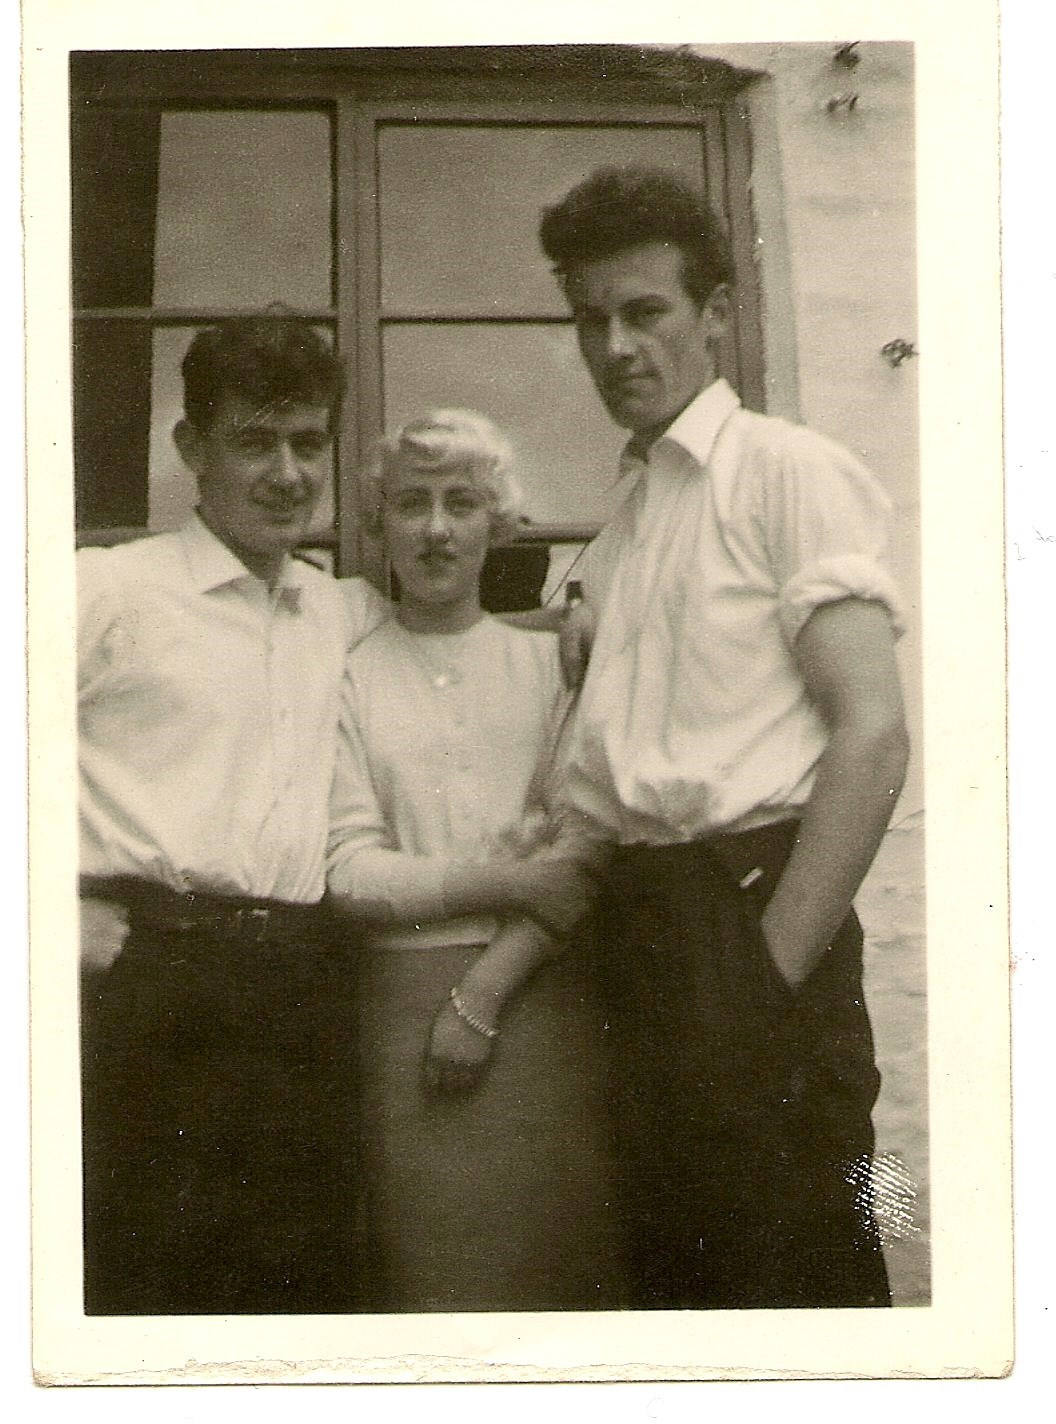 JOHN WITH SISTER IDA AND BROTHER BRIAN